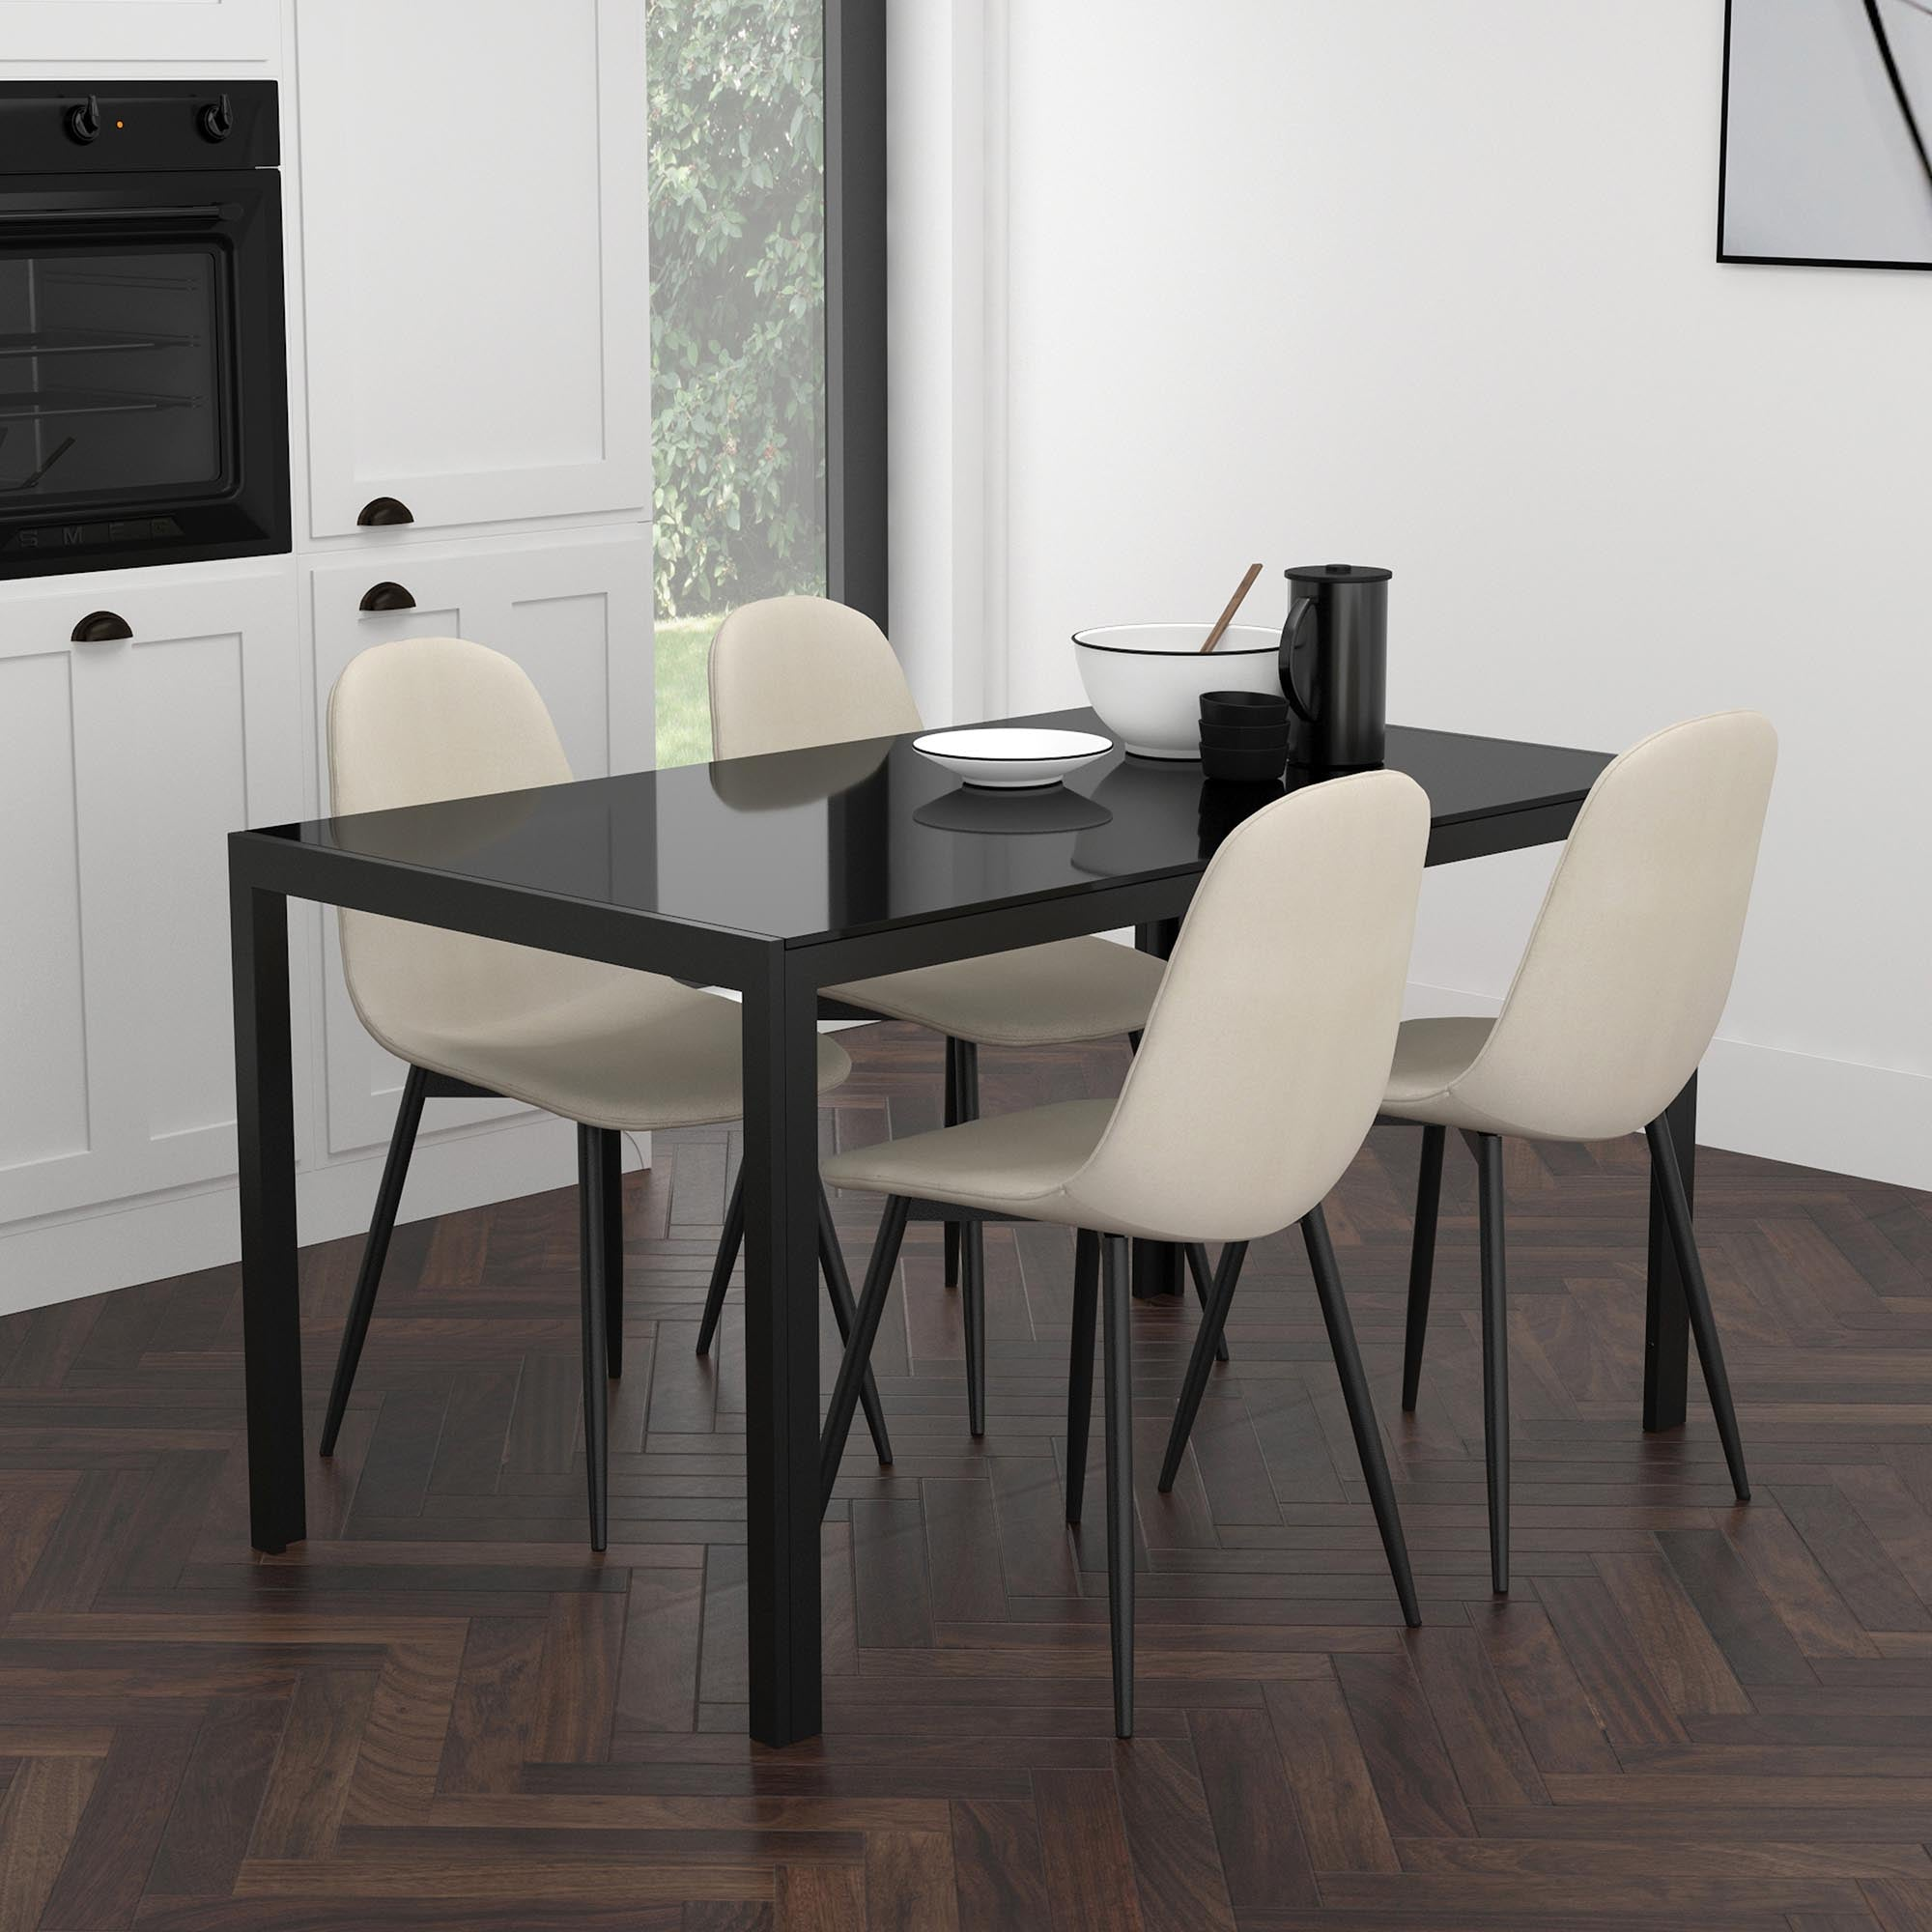 Contra/Olly 5pc Dining Set, Black/Beige